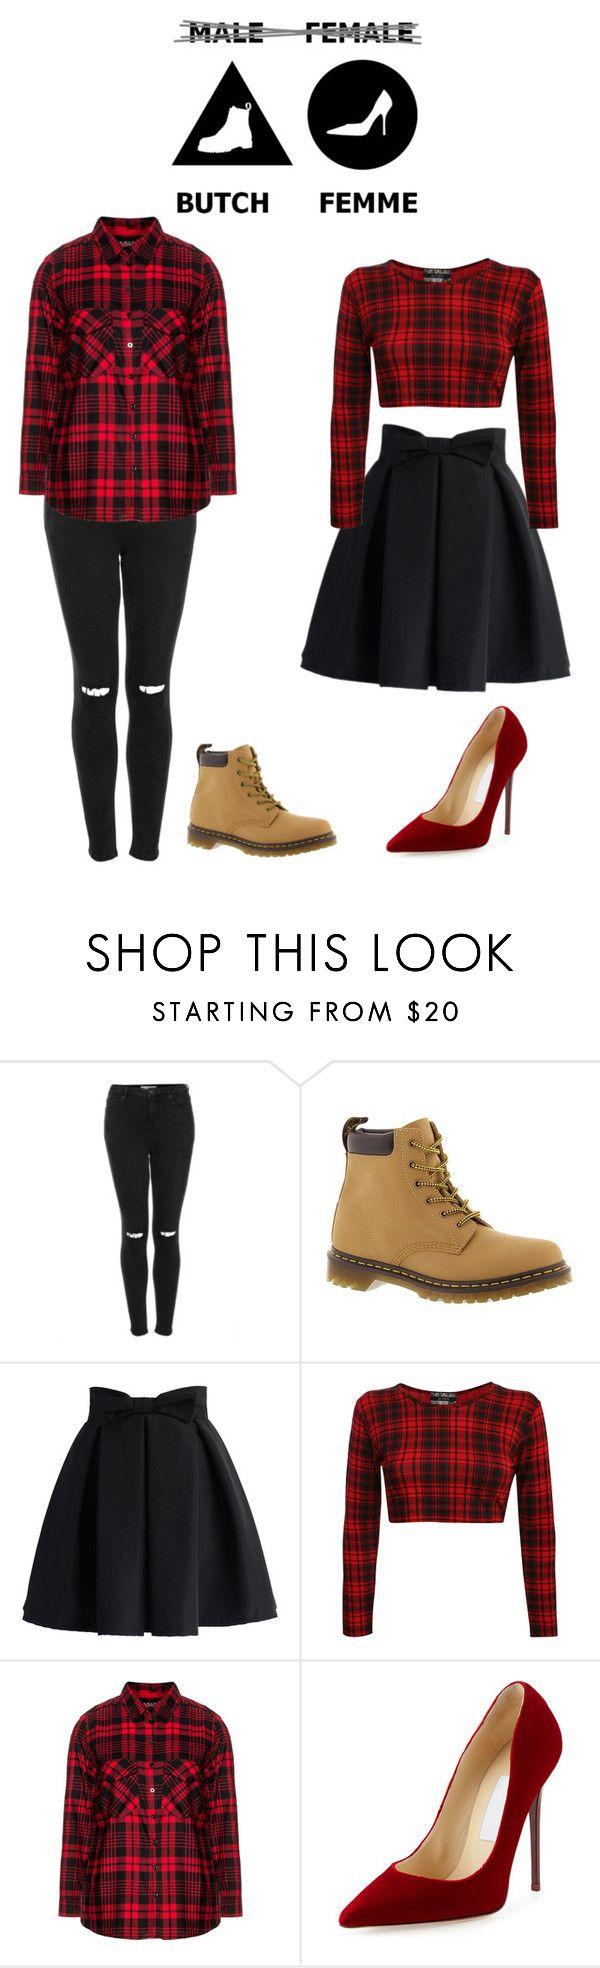 """""""Butch/Femme"""" by cora-mccutcheon ❤ liked on Polyvore featuring Topshop, Dr. Martens, Chicwish, Frapp, Jimmy Choo, femme, Lesbian and butch"""